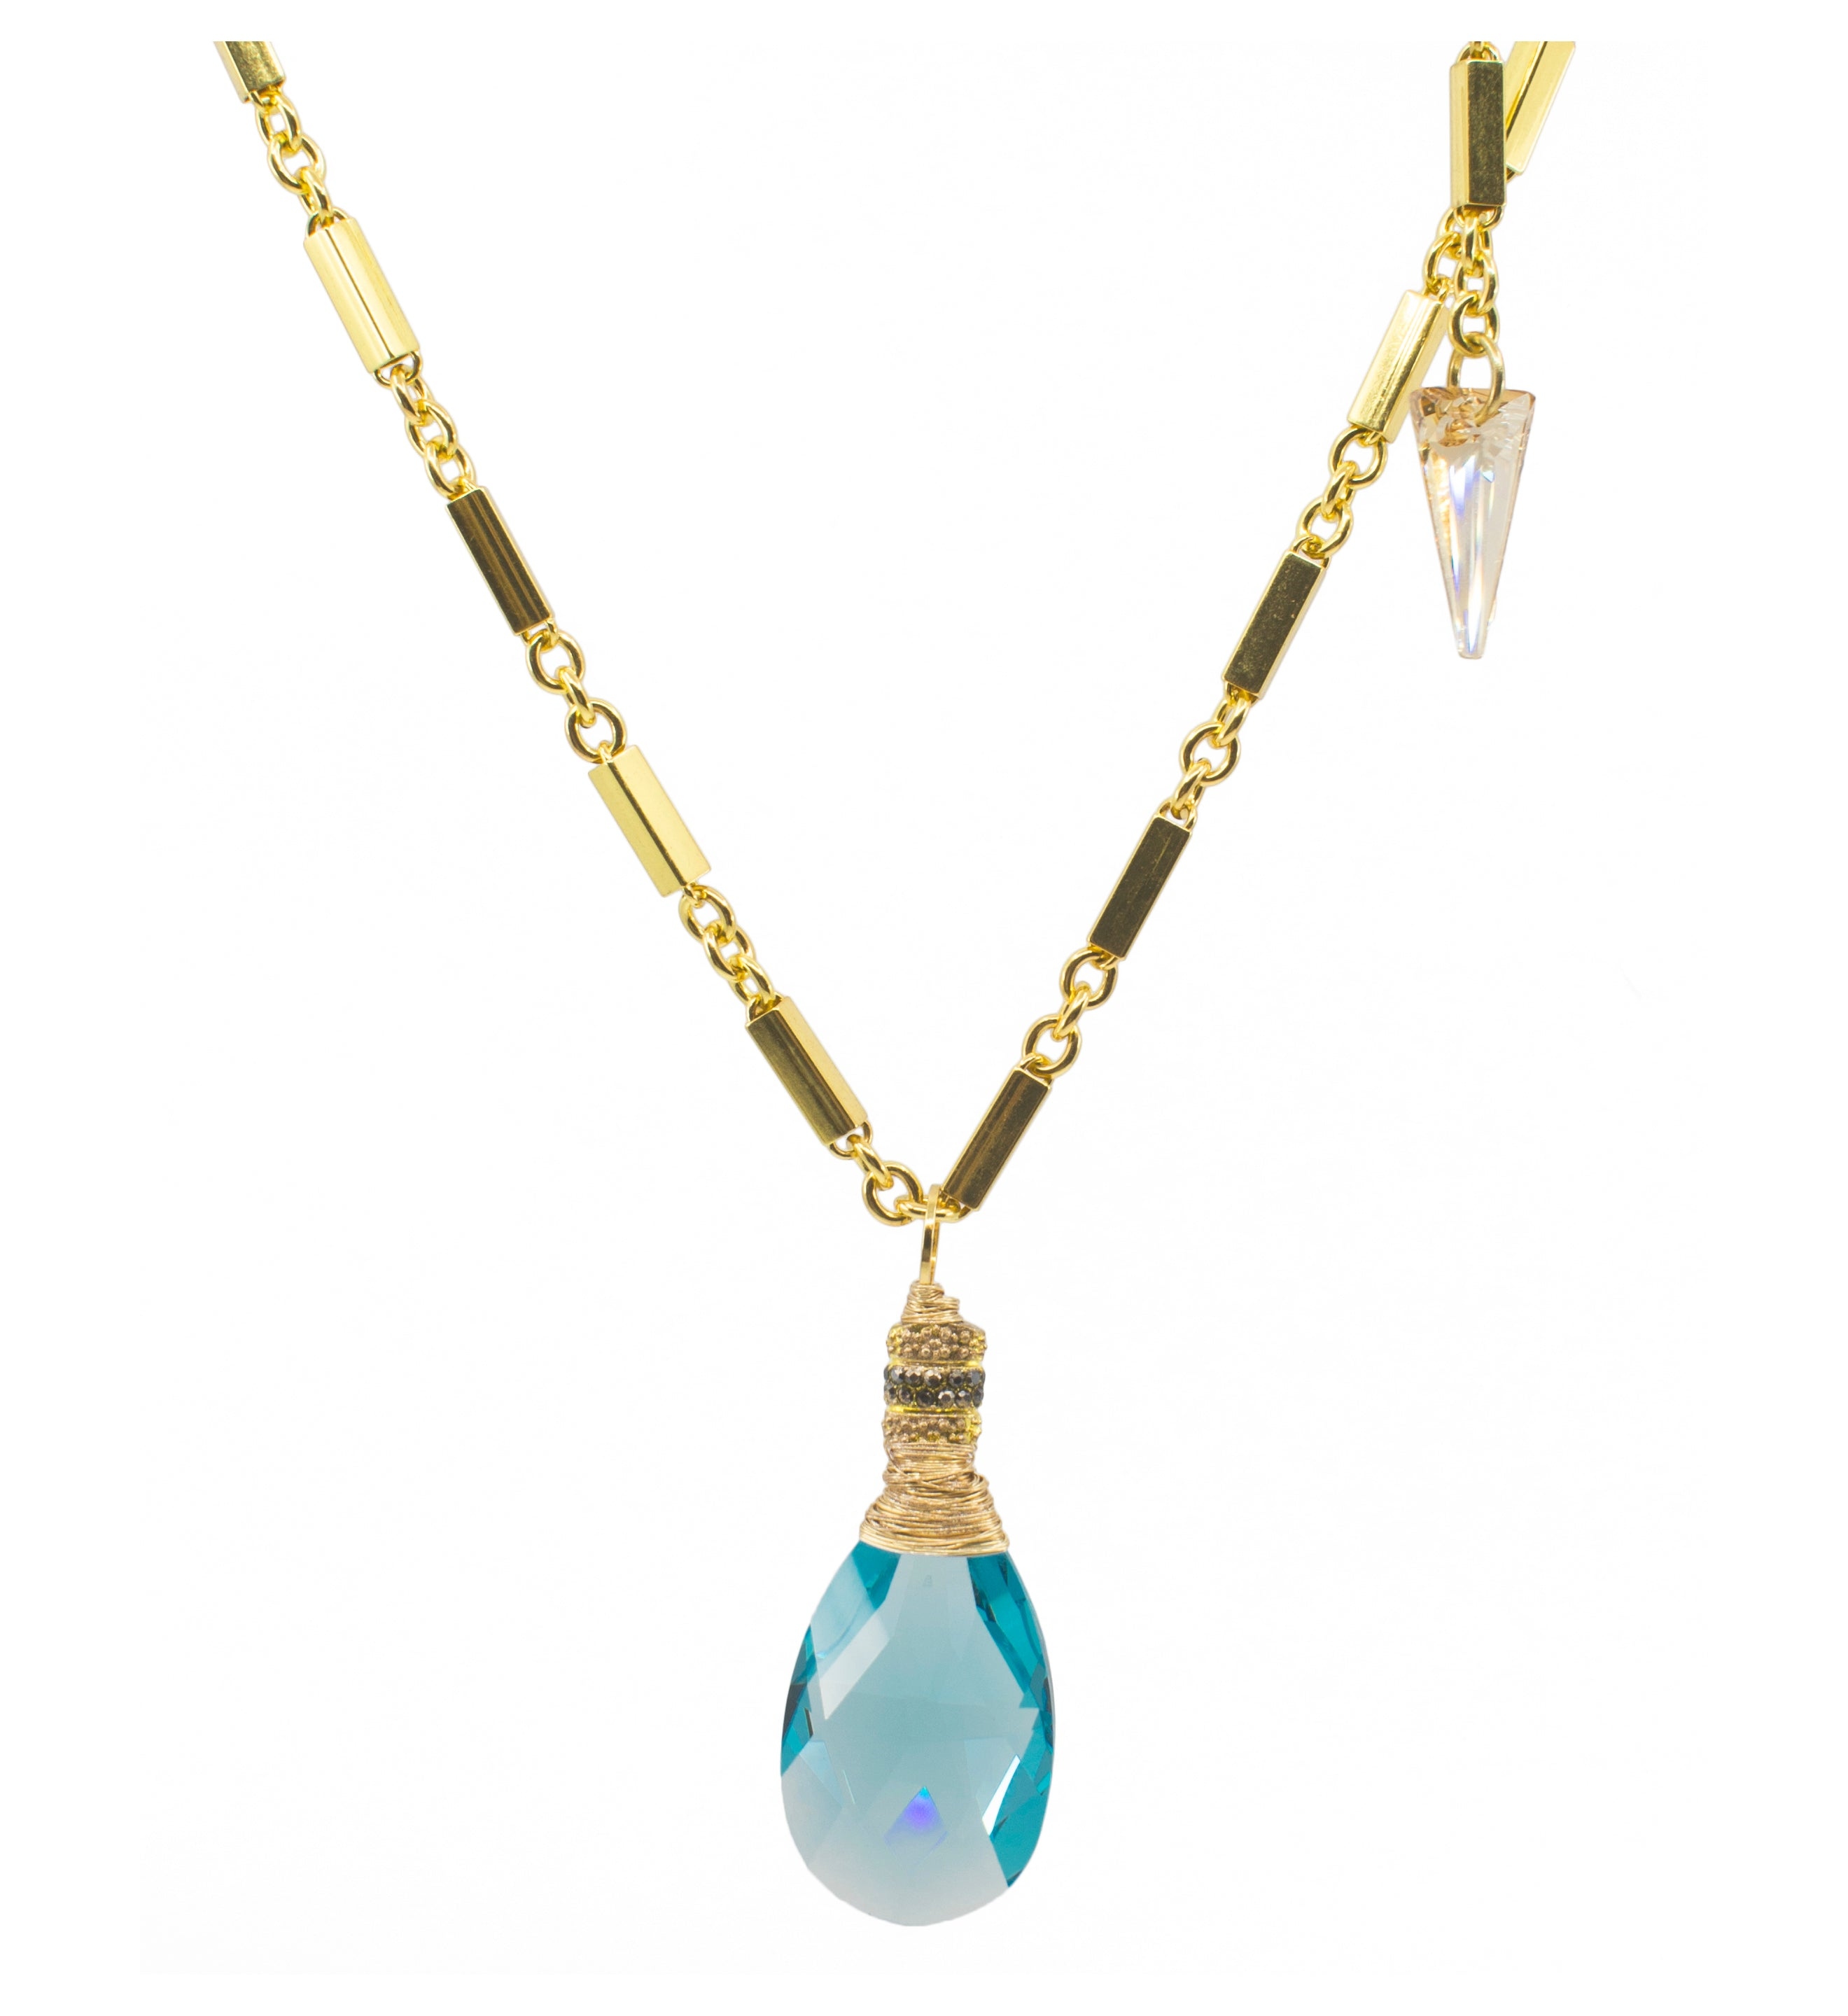 Aqua Swarovski Pendant on Gold Plated Chain